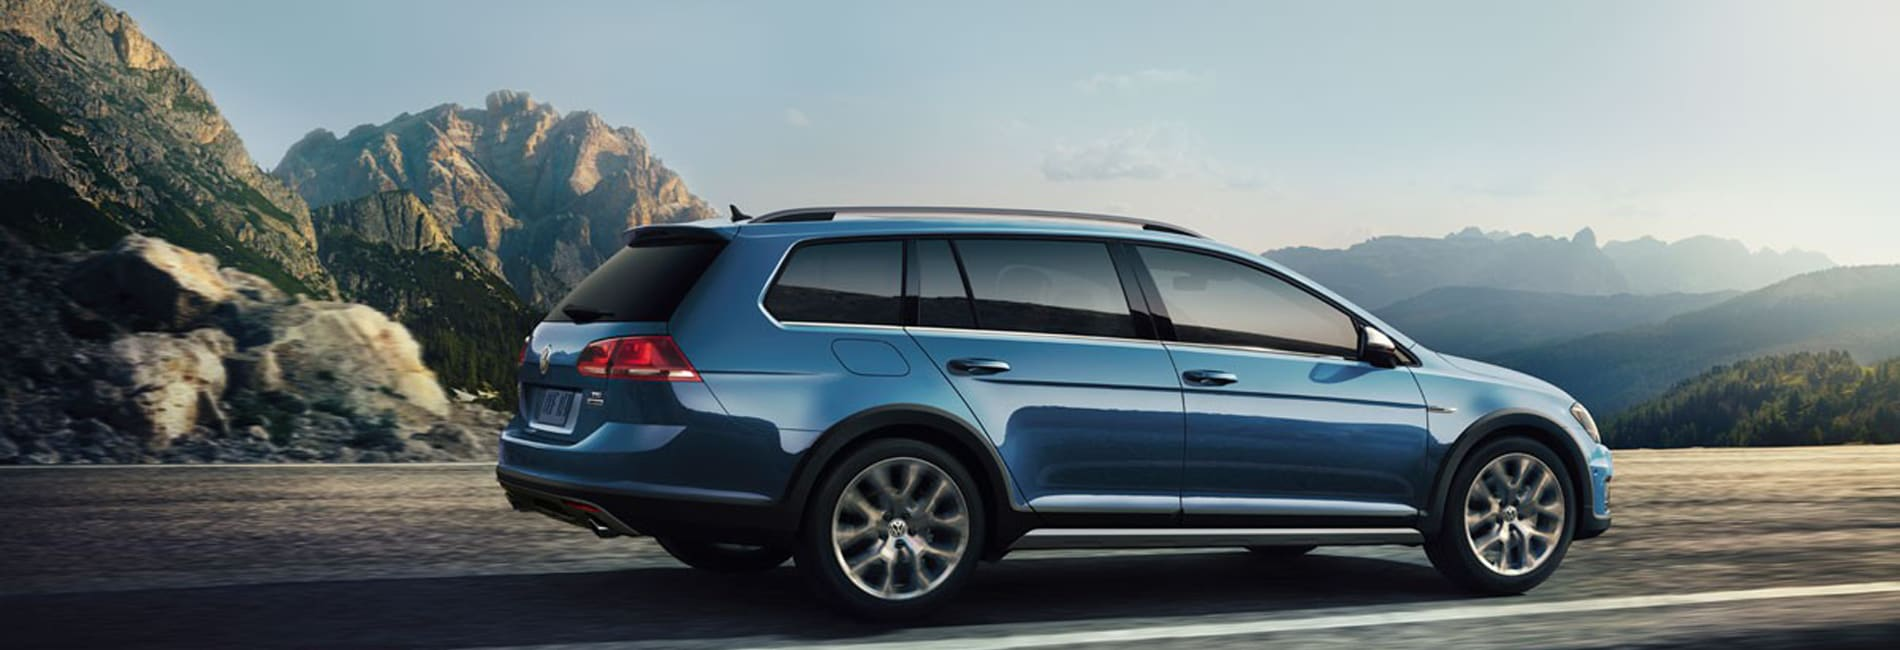 Volkswagen Golf Alltrack Interior and Exterior Vehicle Features